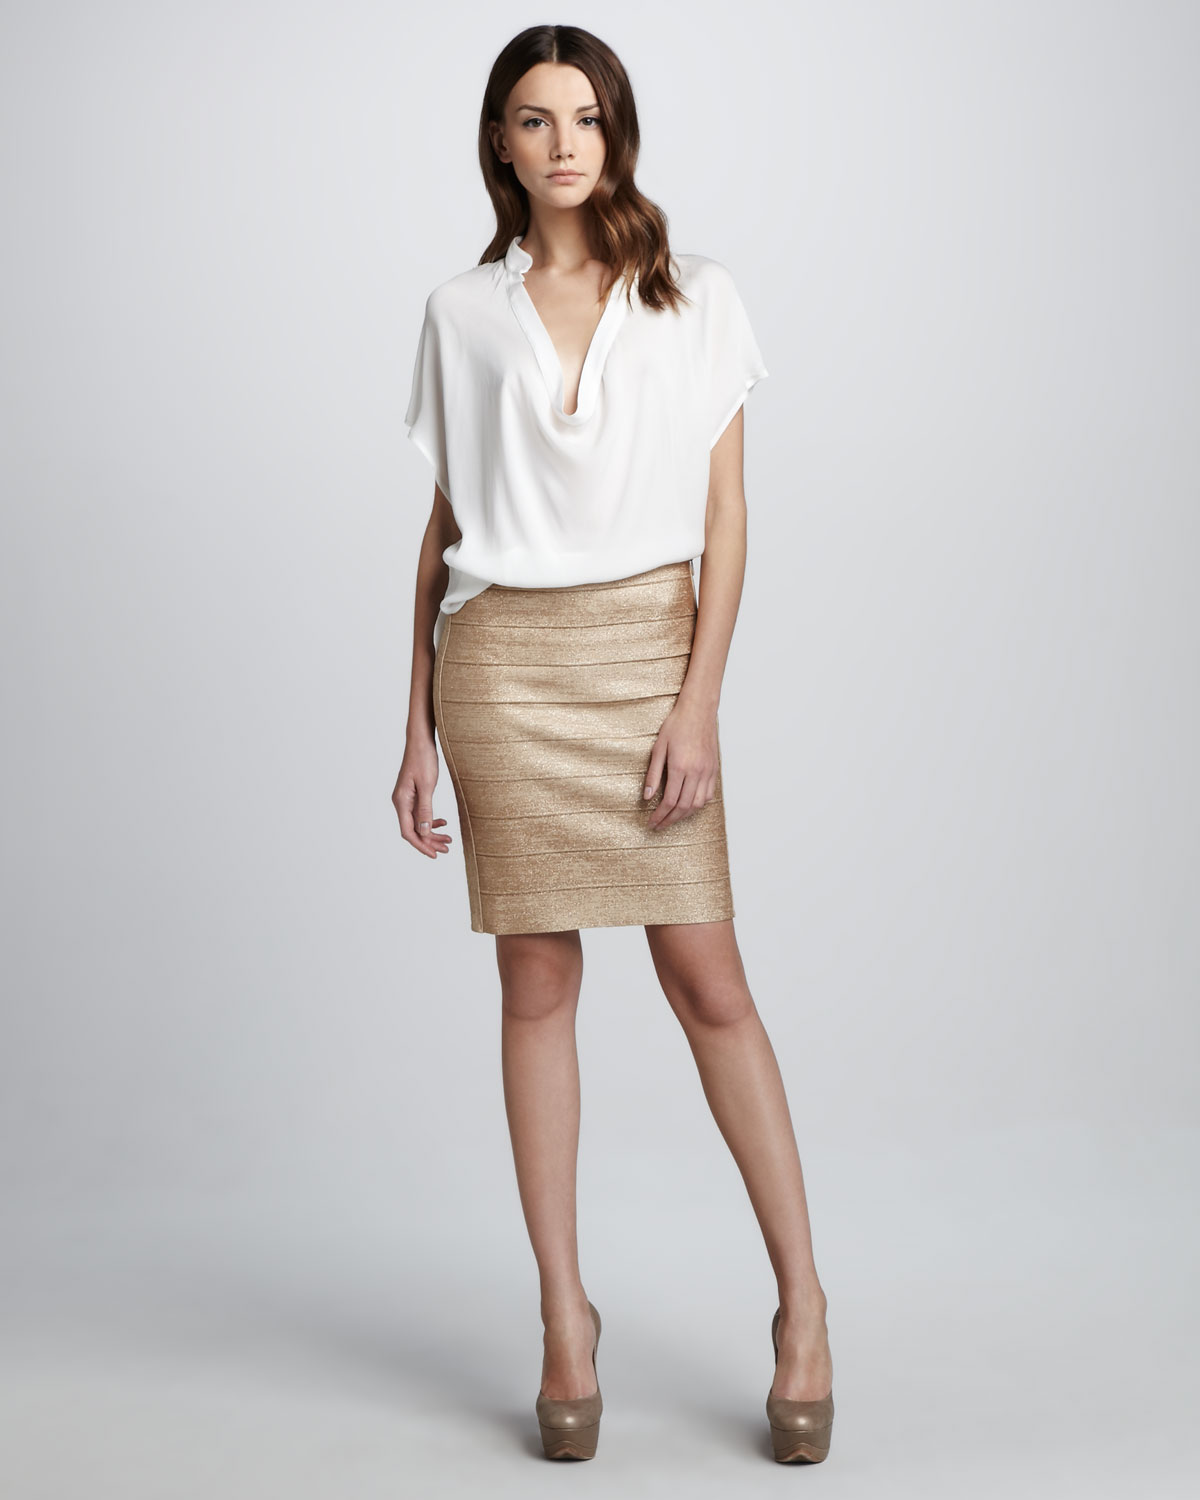 pencil skirt outfits tumblr and crop top dress pattern